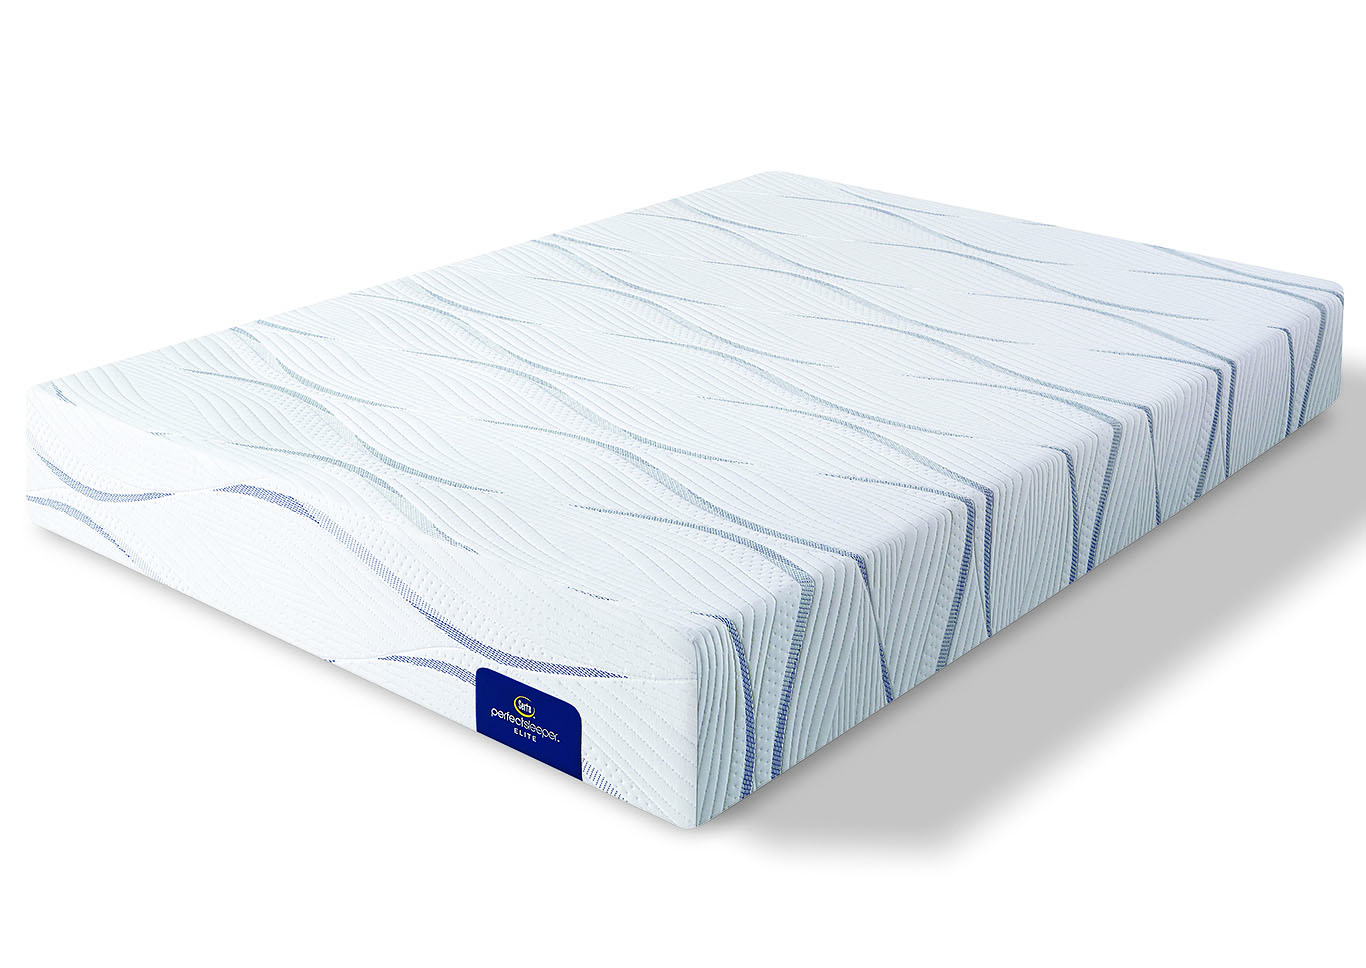 Merriam II Queen Mattress,Huffman Koos